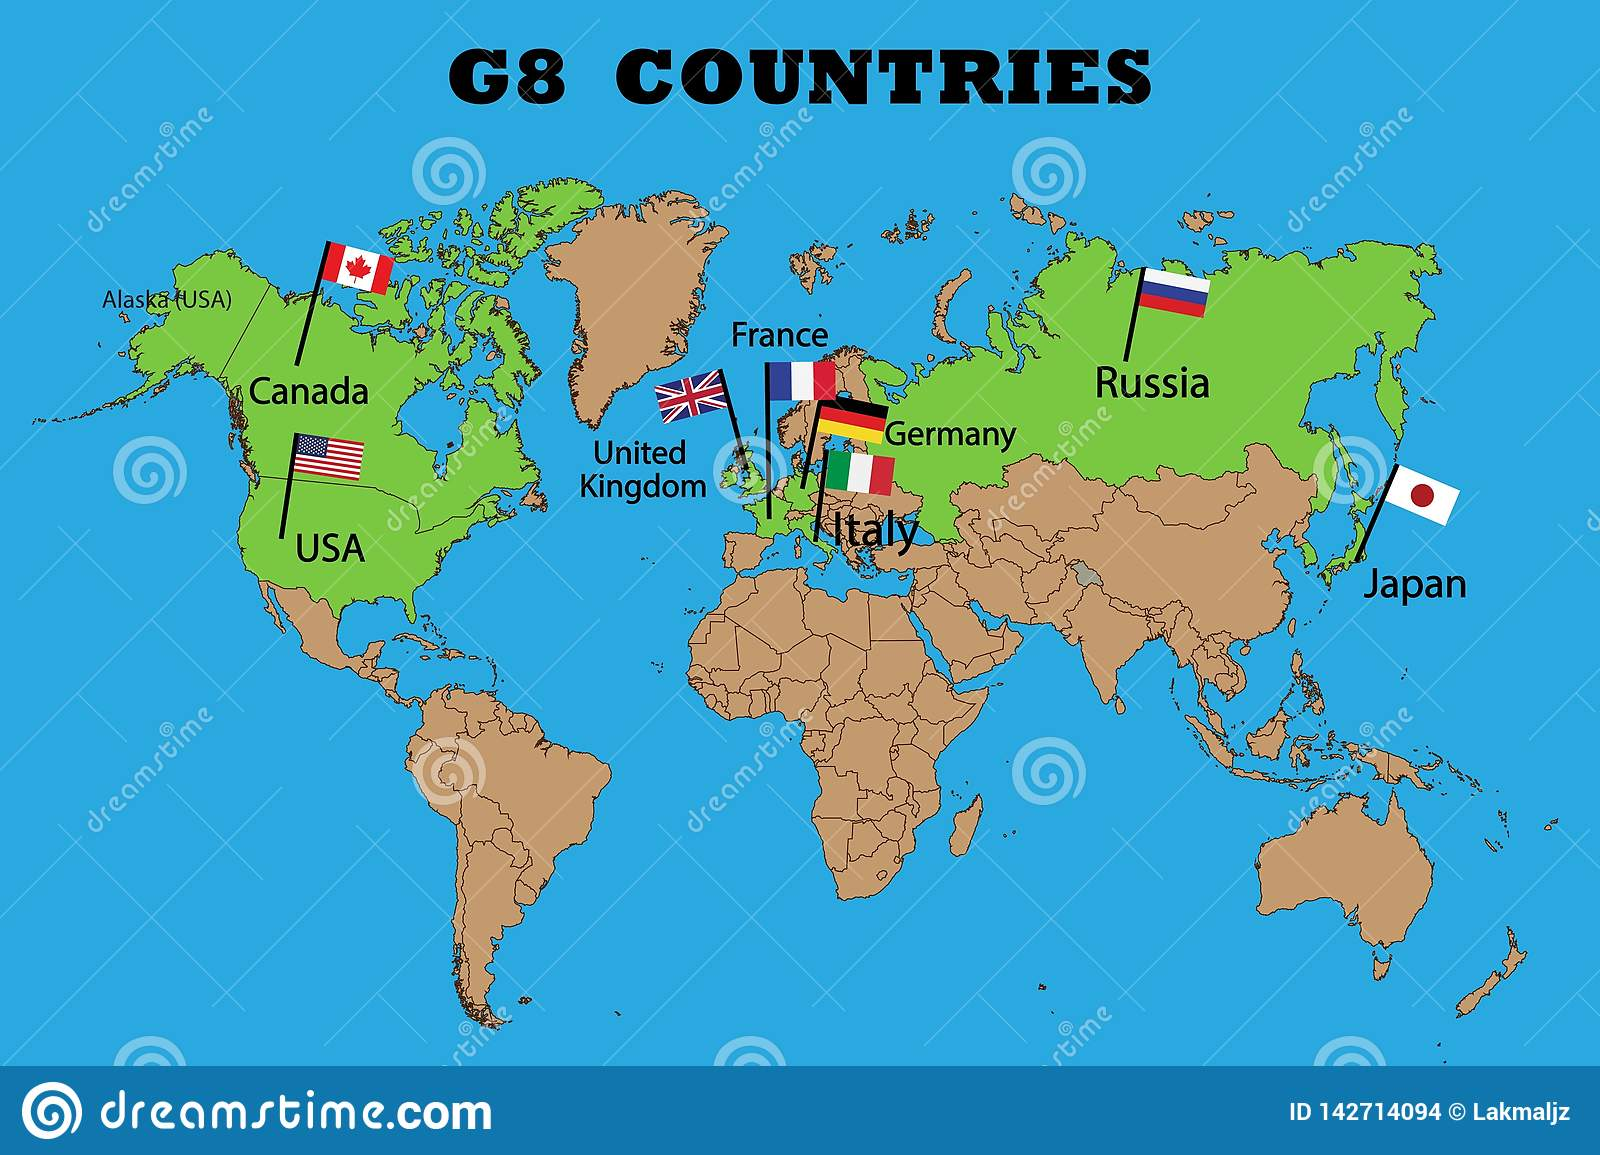 Map of Members of the G8 group